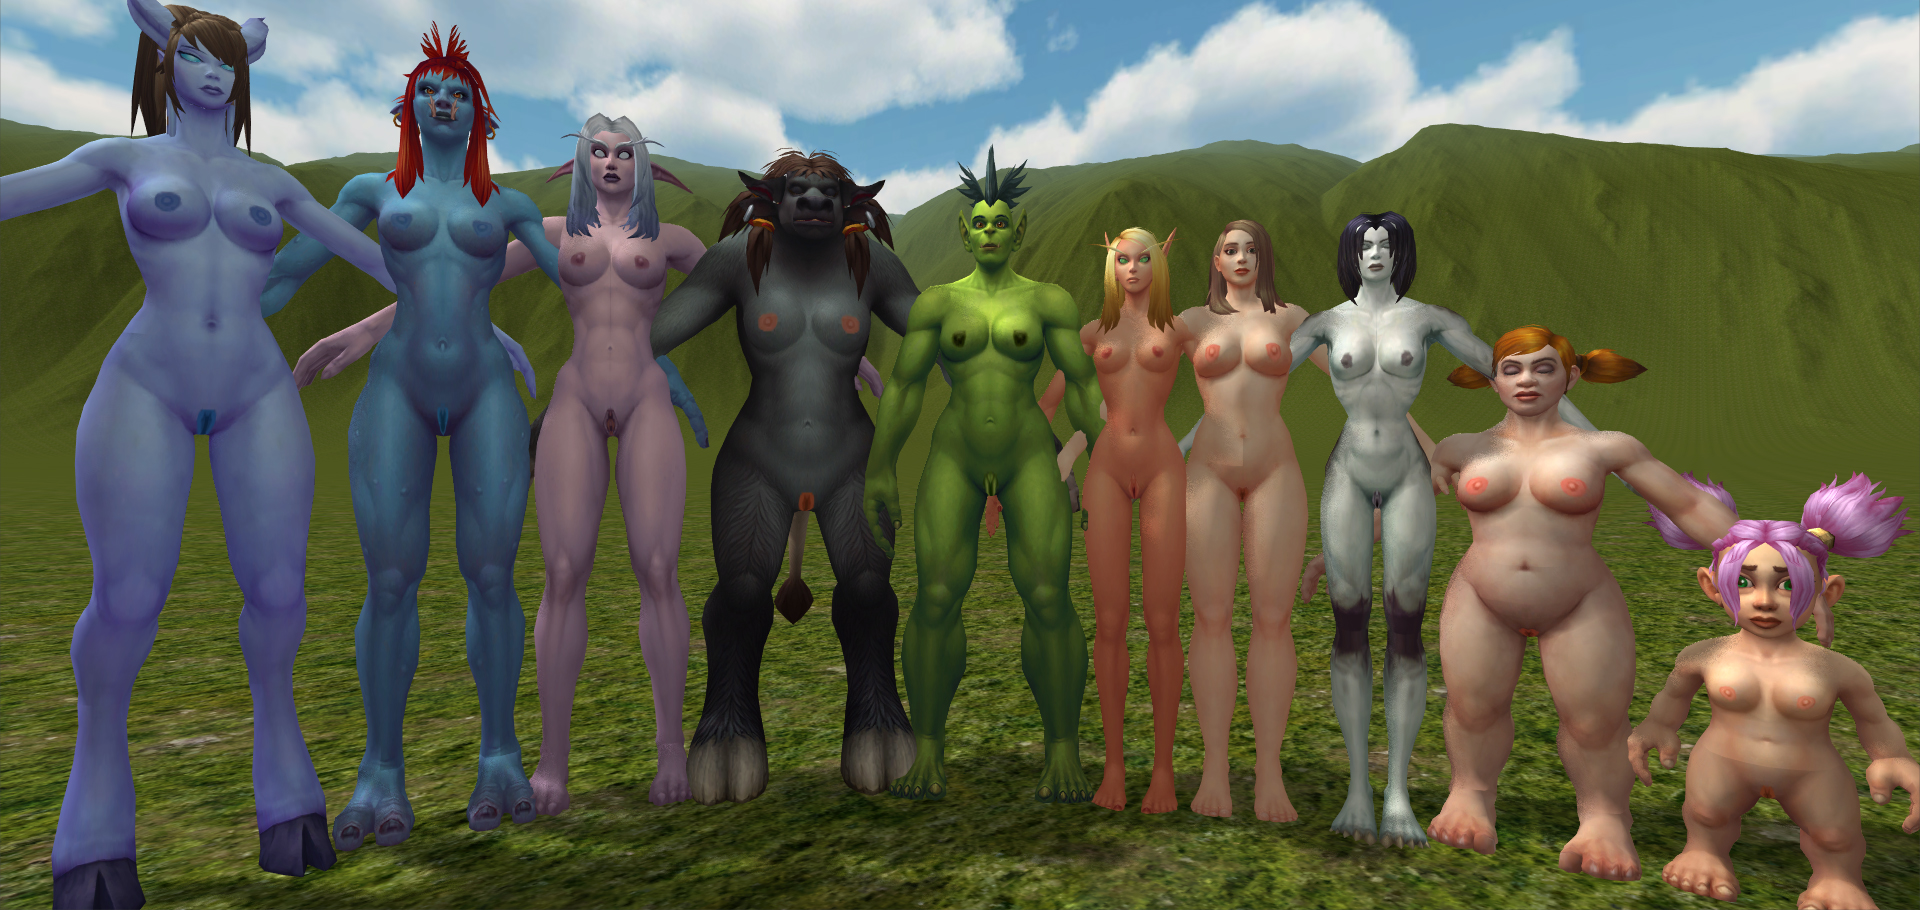 World of warcraft naked mod softcore actress